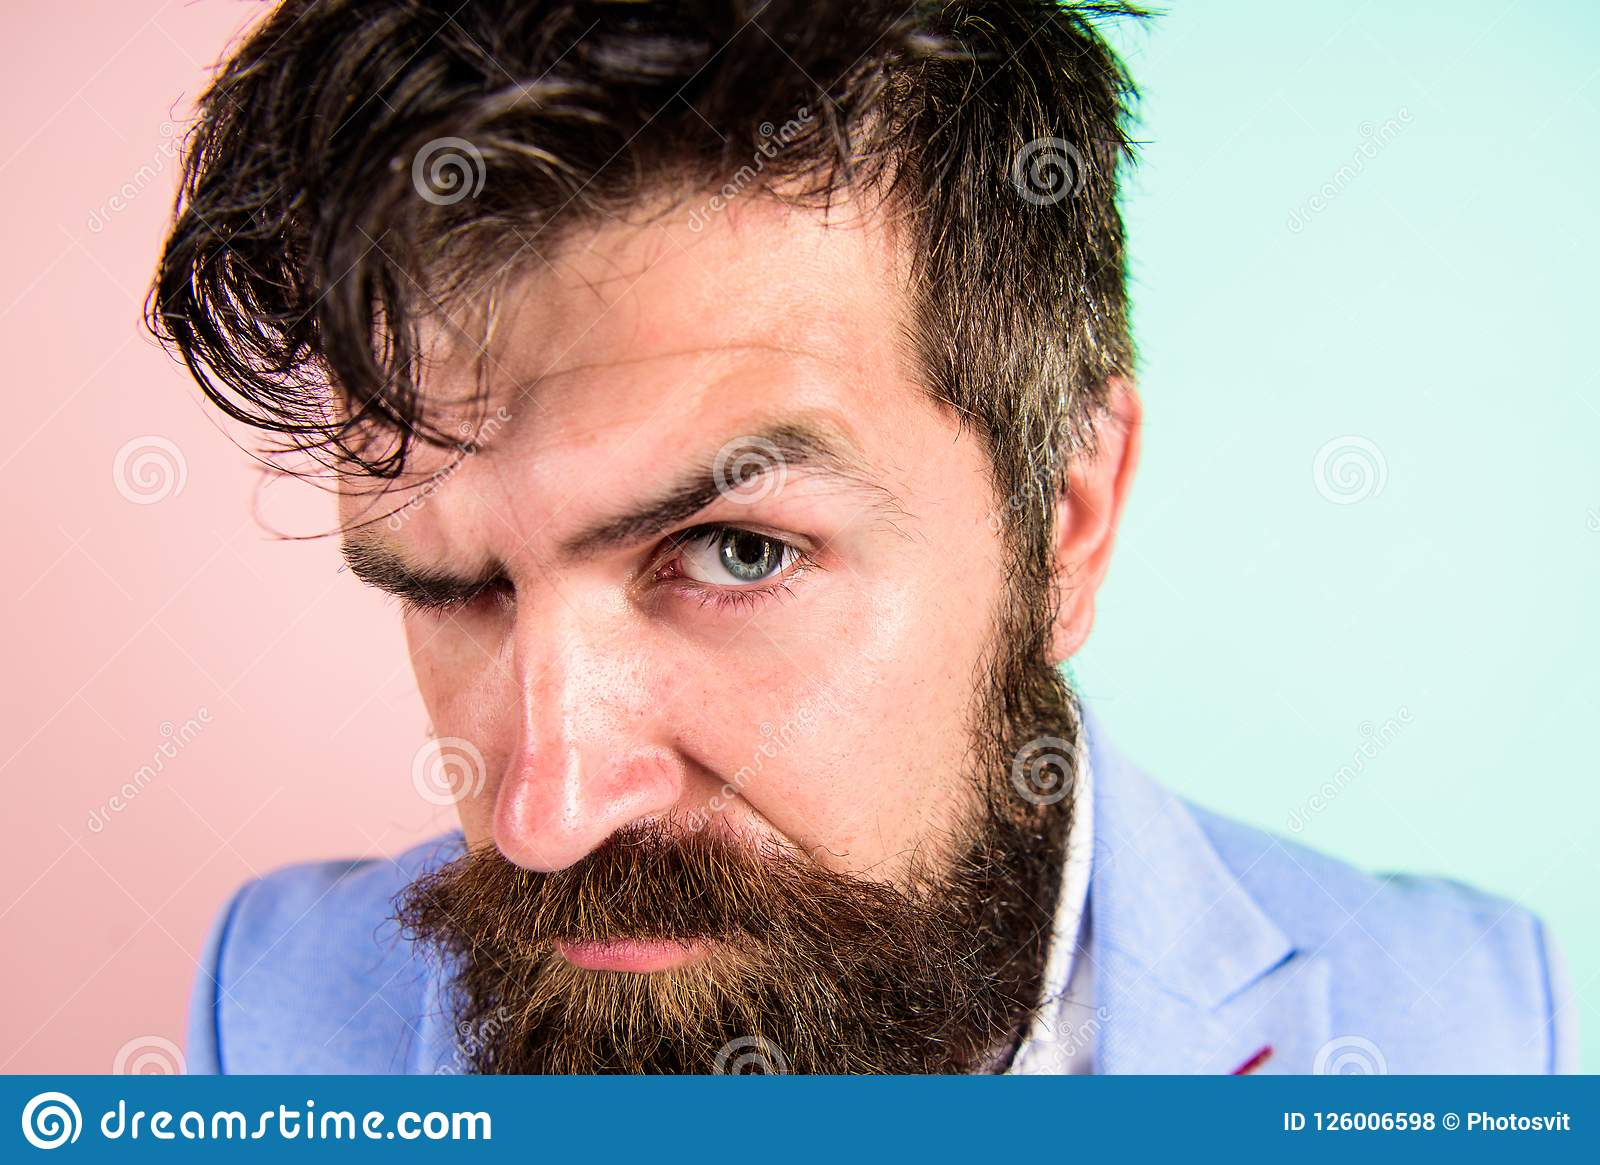 Keep Hair Tidy And Care About Hairstyle Man Bearded Hipster On